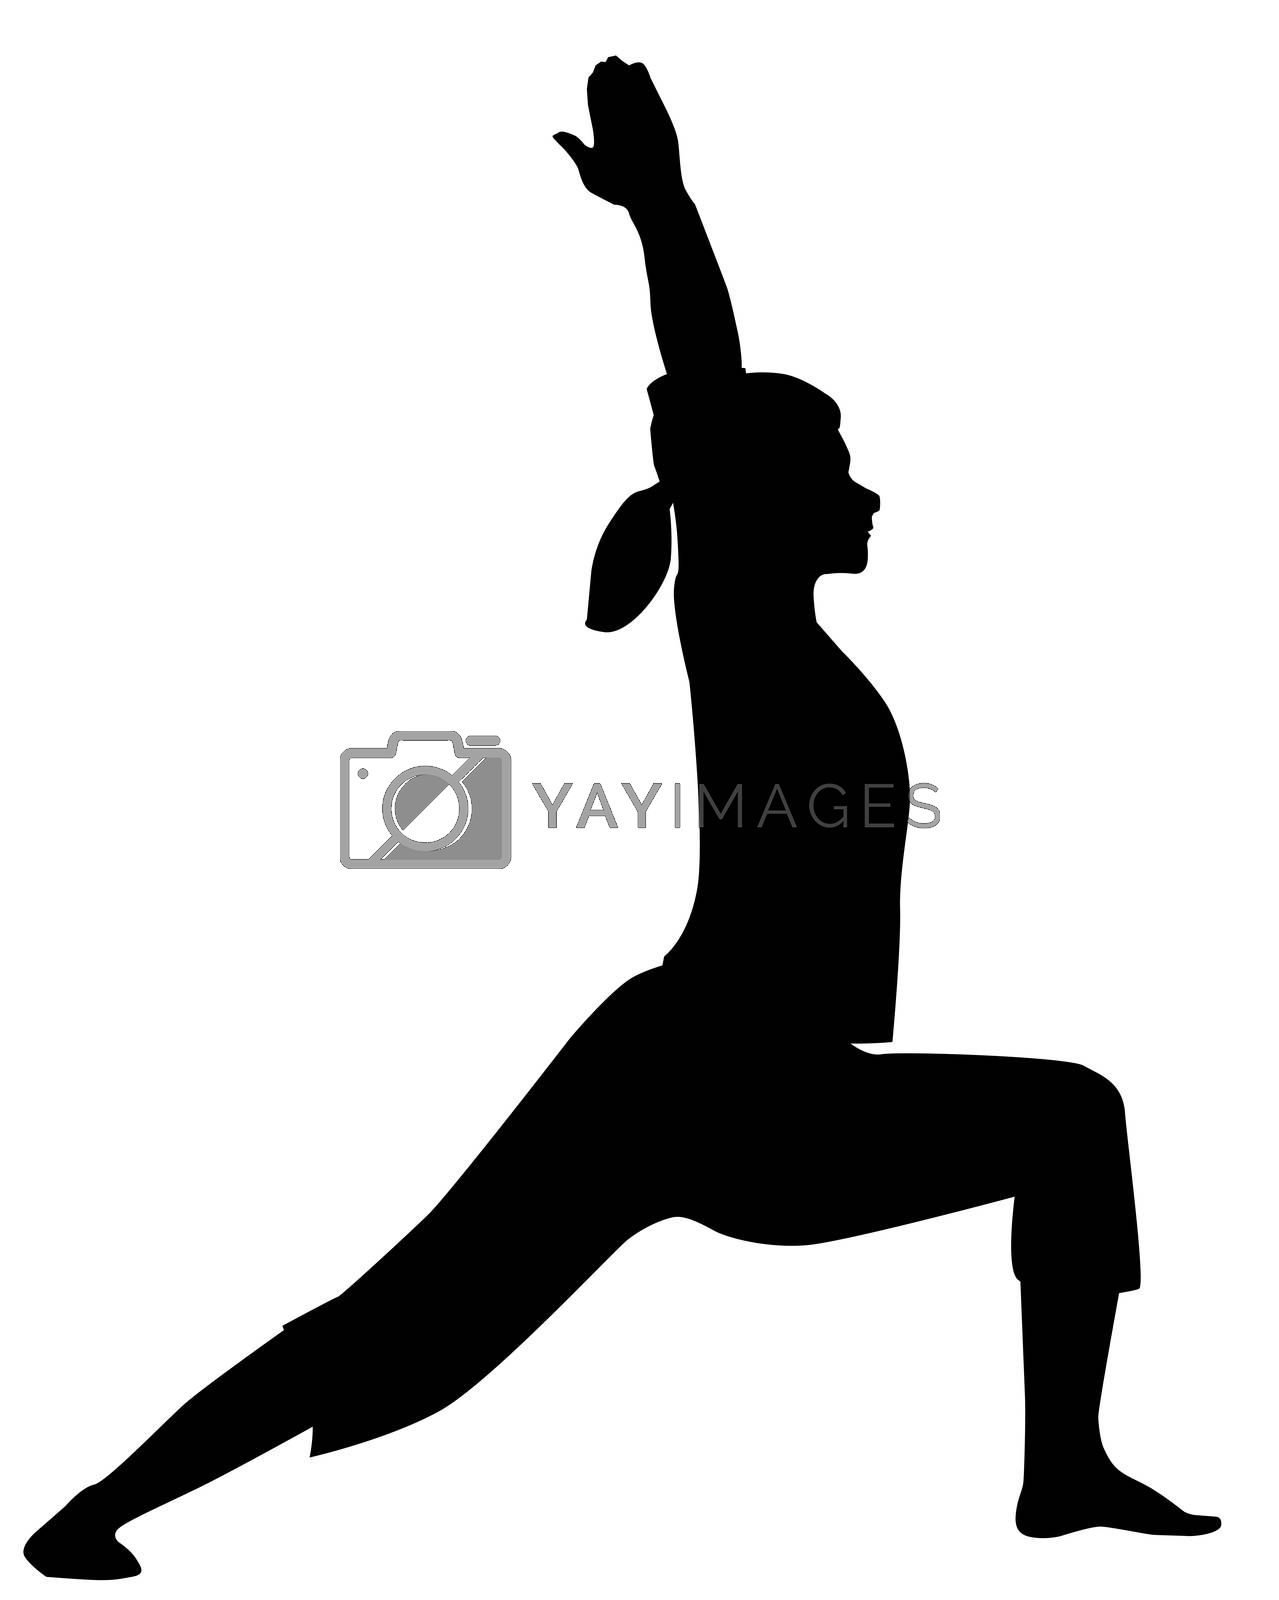 A yoga pose or asana in silhouette isolated over white.